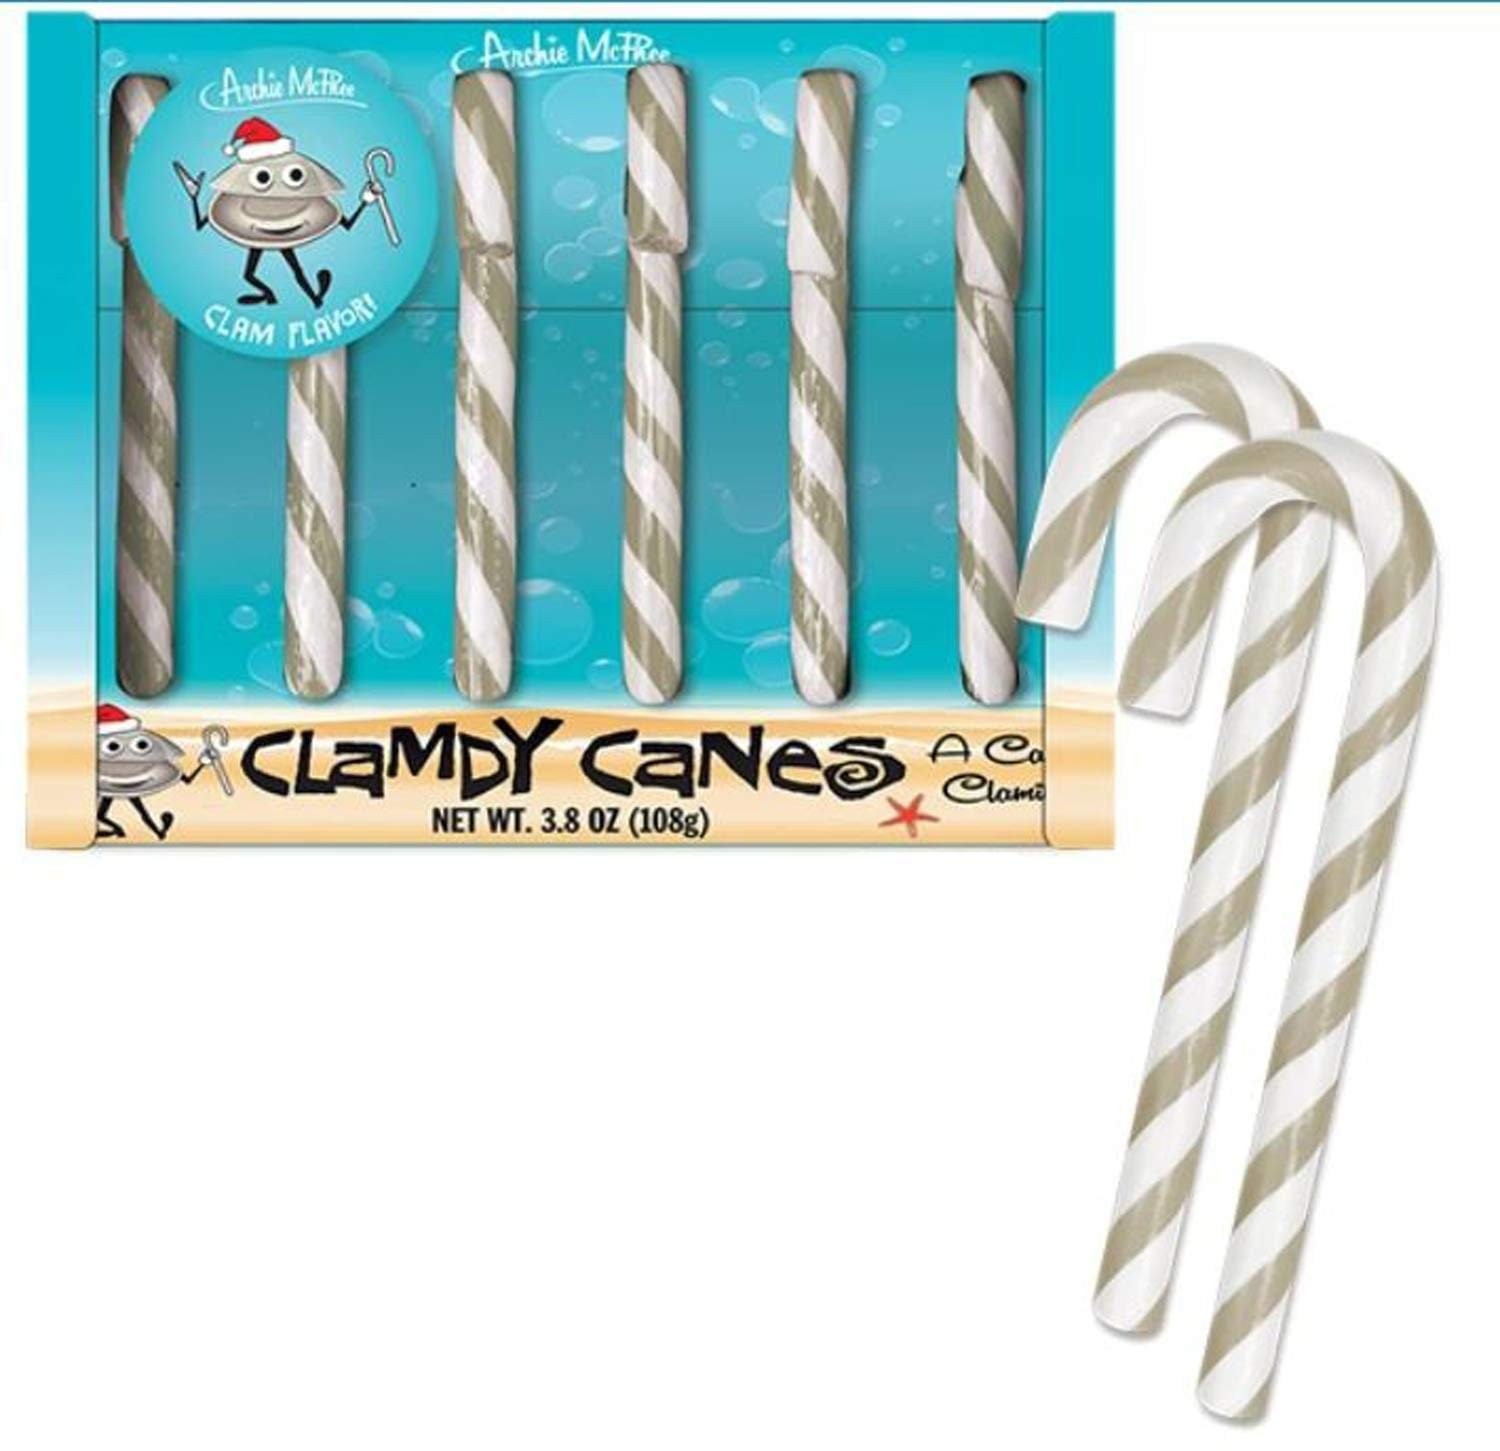 Clam Candy Canes - Everyone Needs Clamdy Canes - One shell of a candy